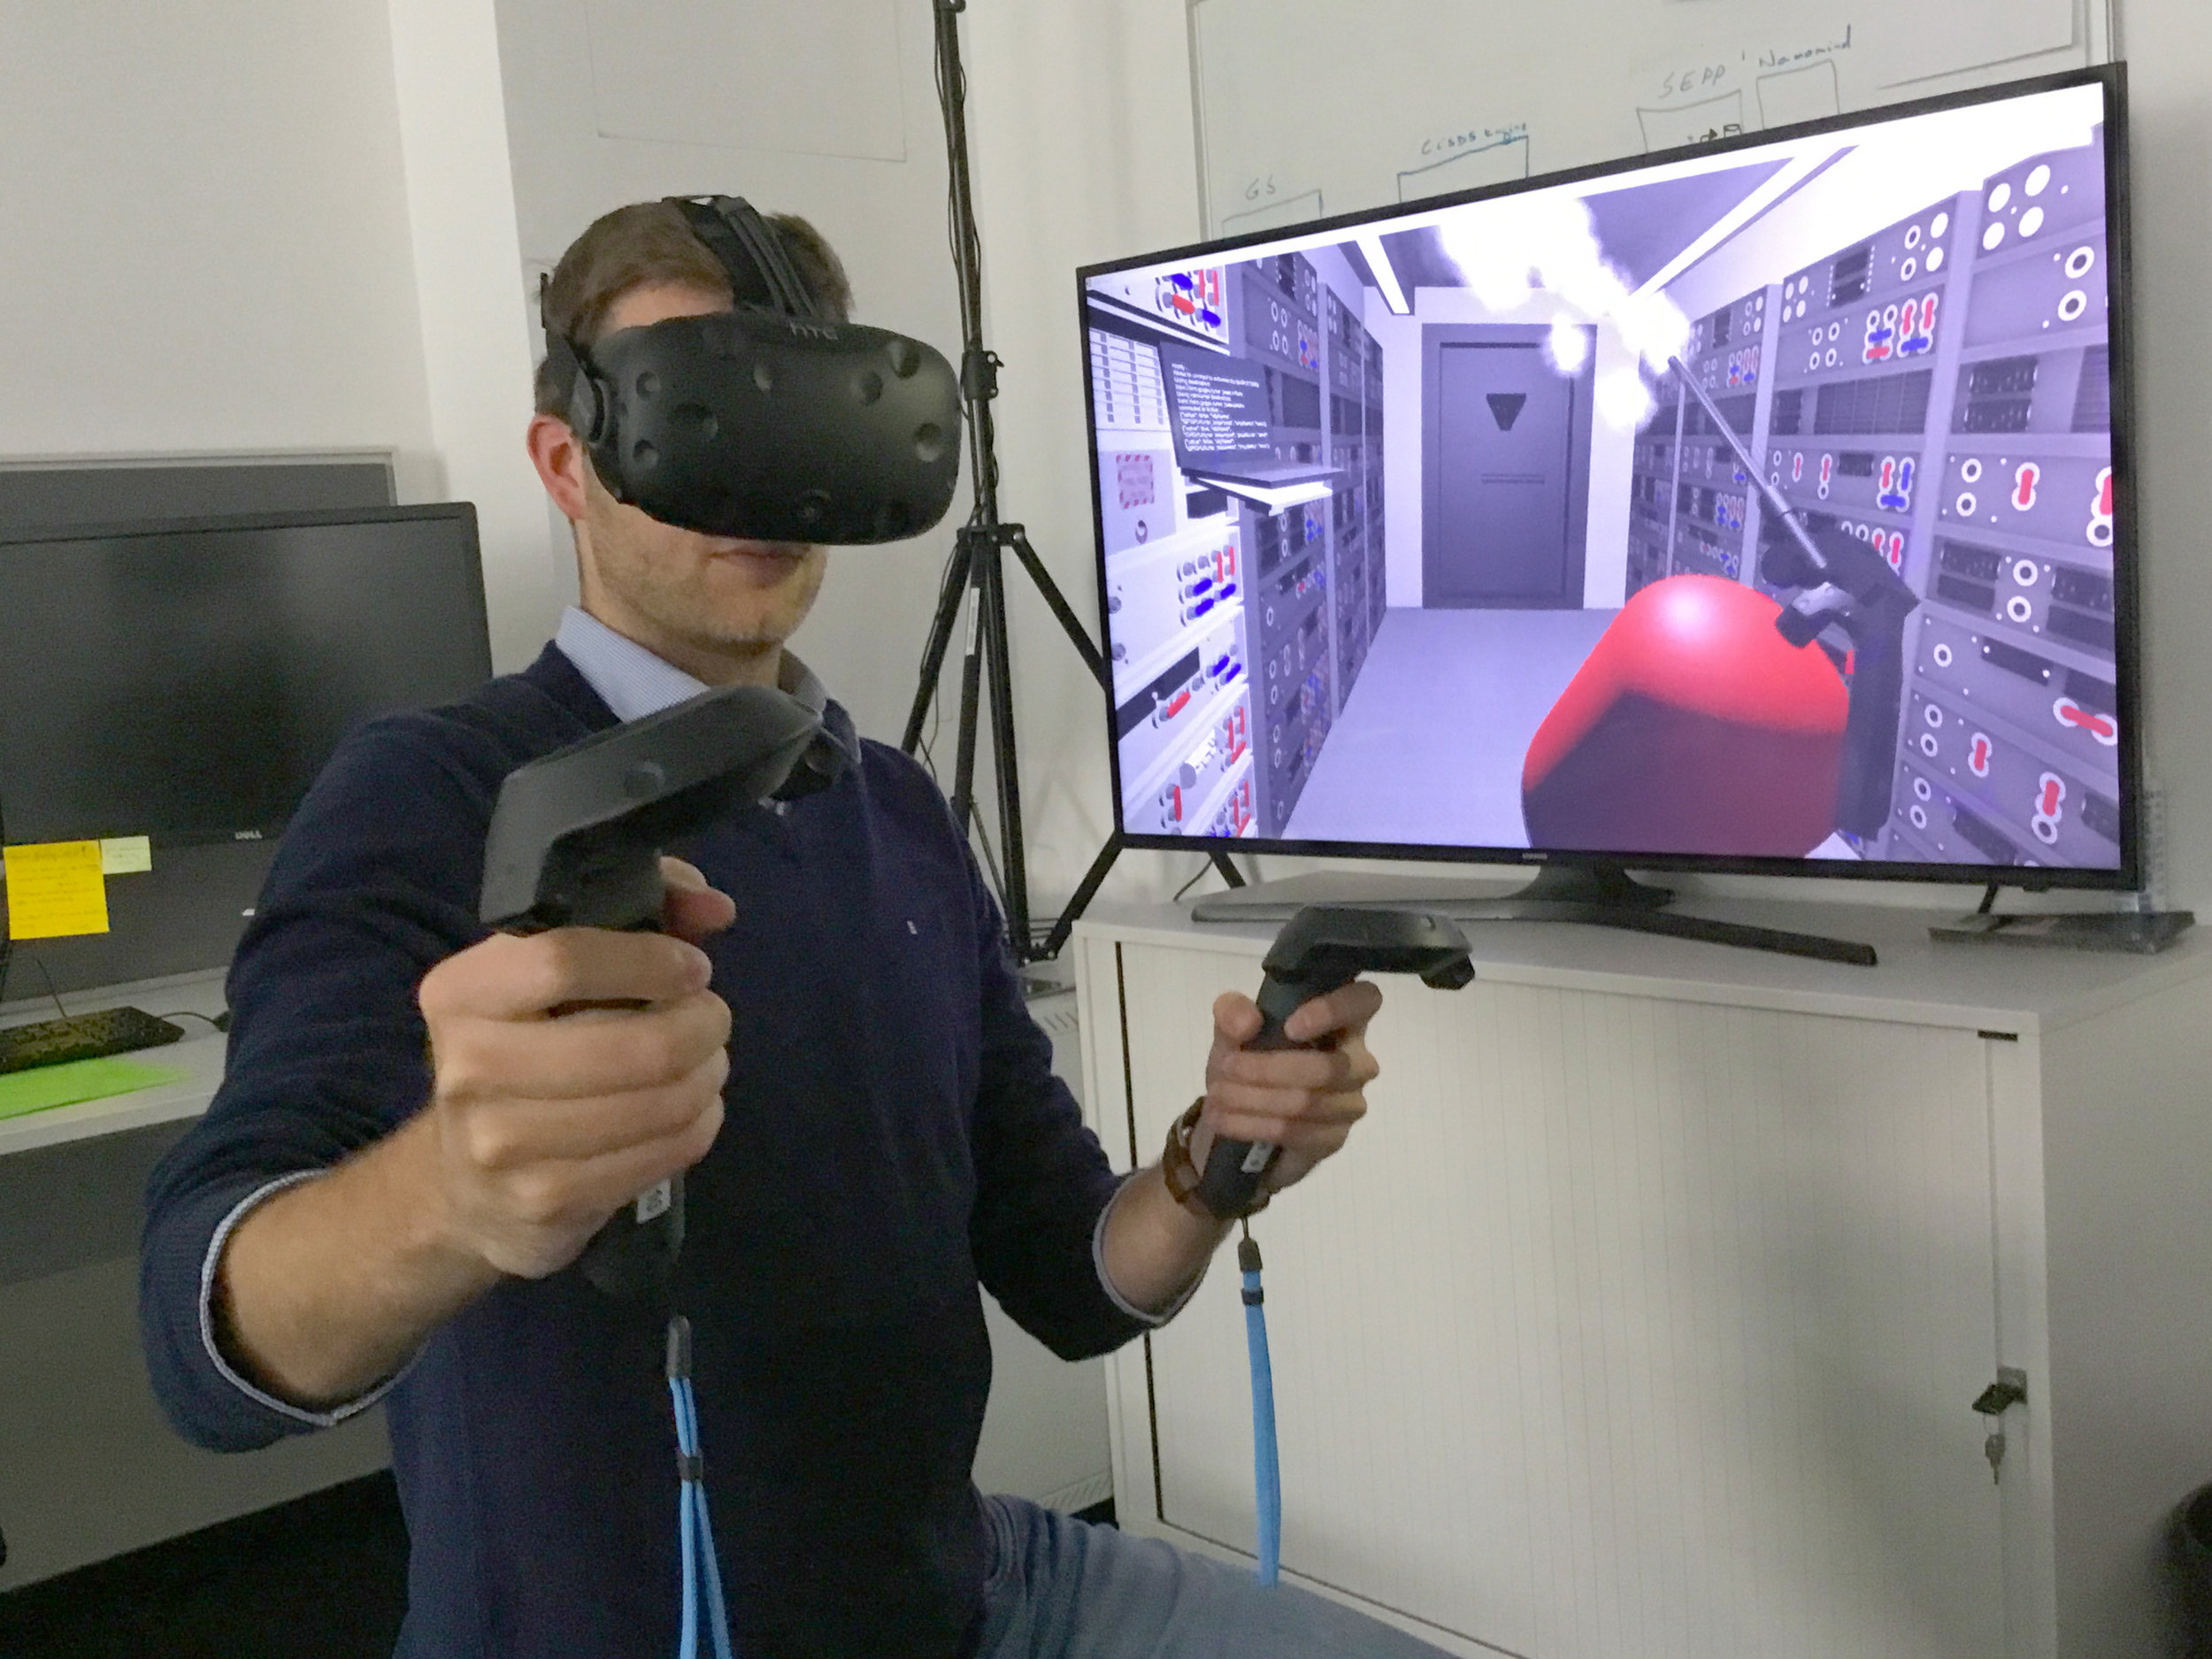 Researchers with the  European Space Agency  in  Darmstadt, Germany , exploring virtual reality for controlling  planetary rovers  and  satellites  in orbit